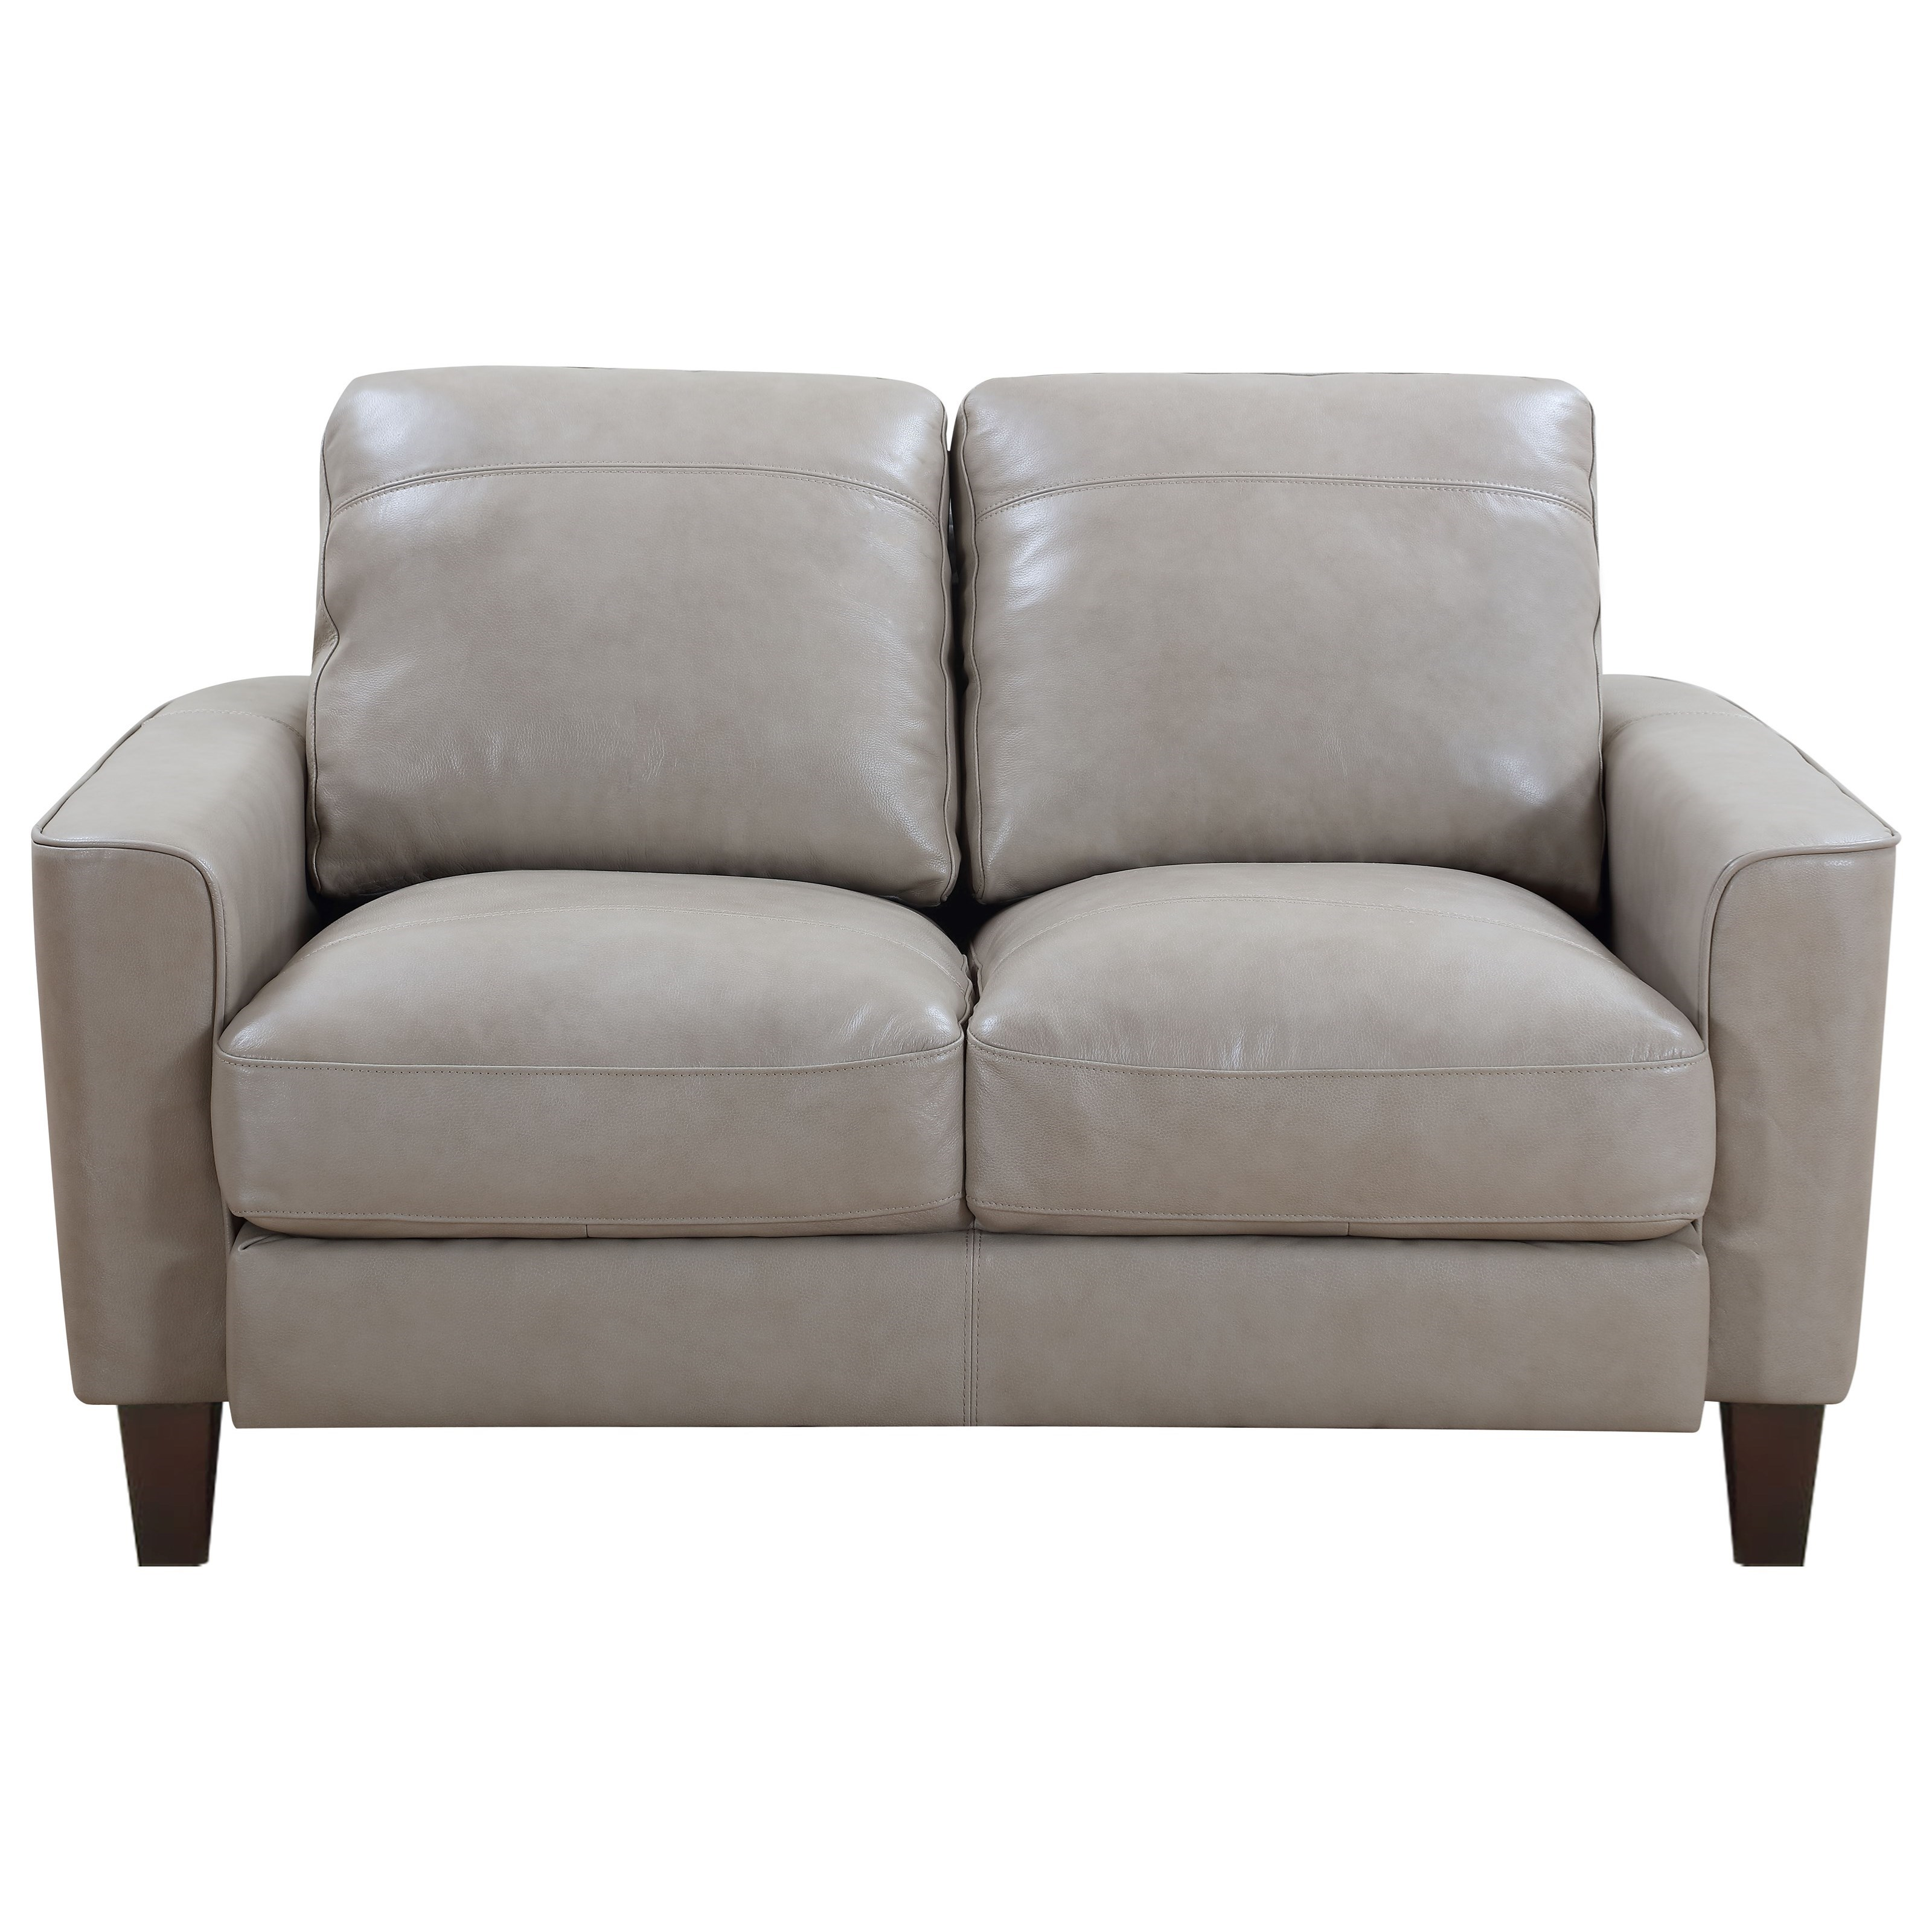 Chino Leather Loveseat at Rotmans